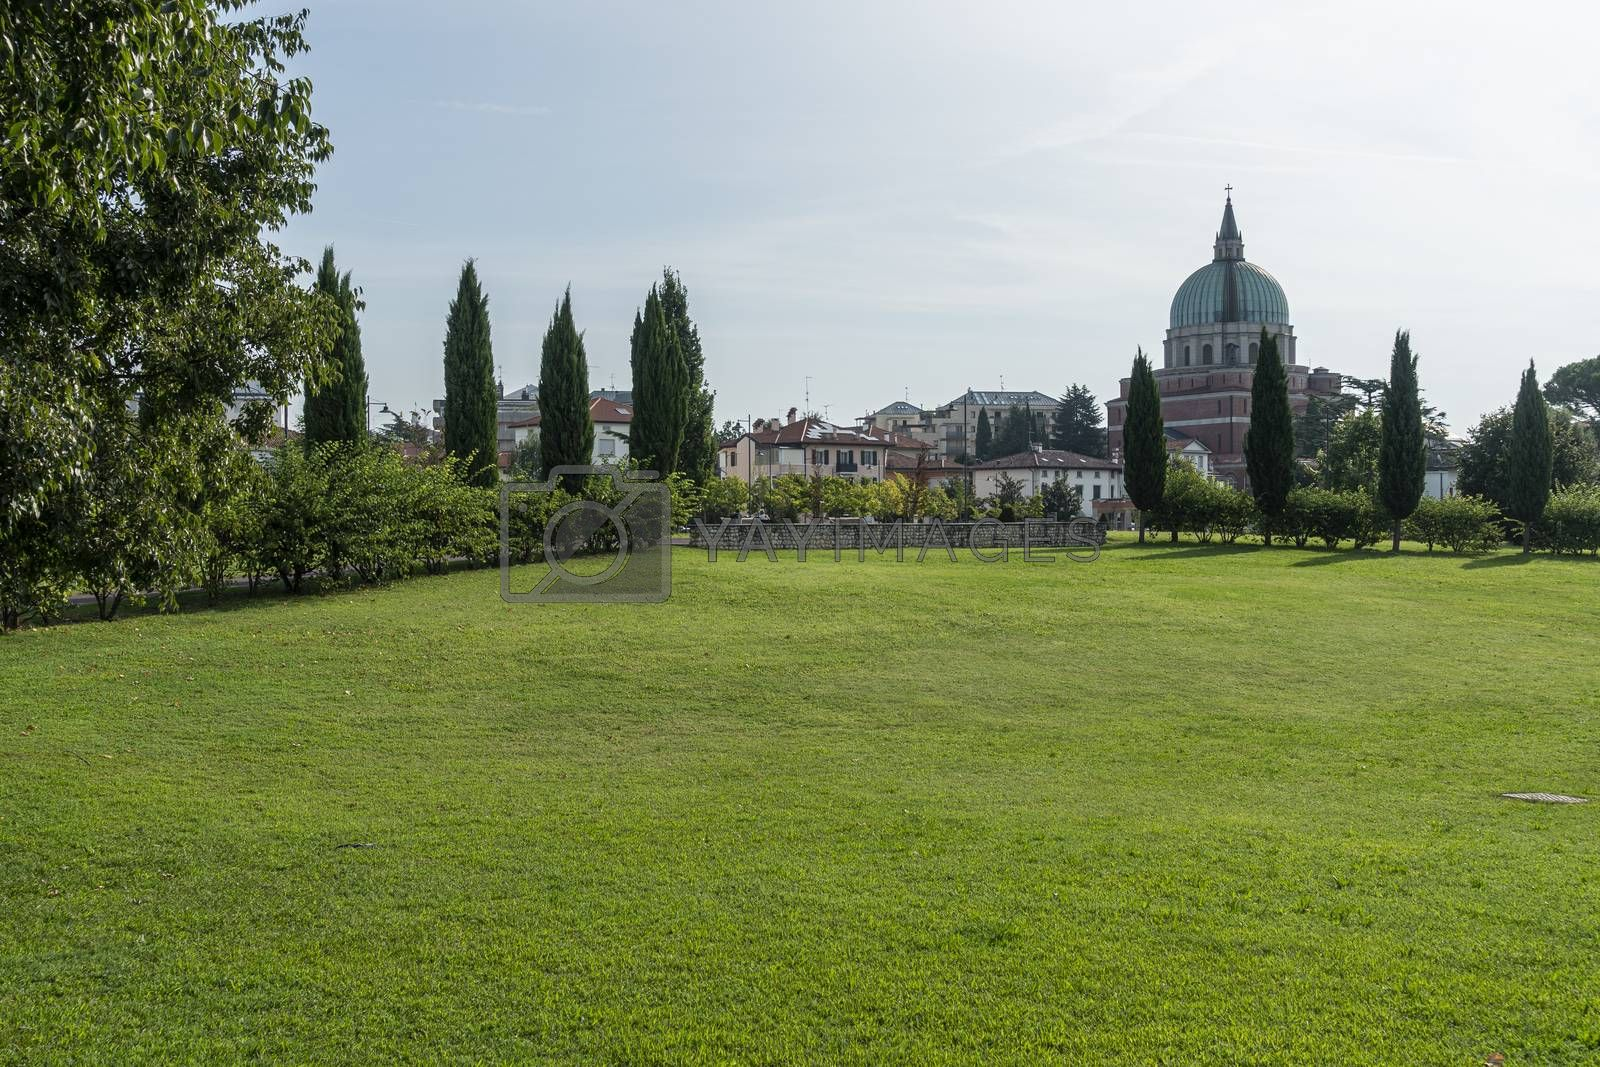 Udine, Italy. September 10, 2020. View of the entrance of the Moretti Park in Udine